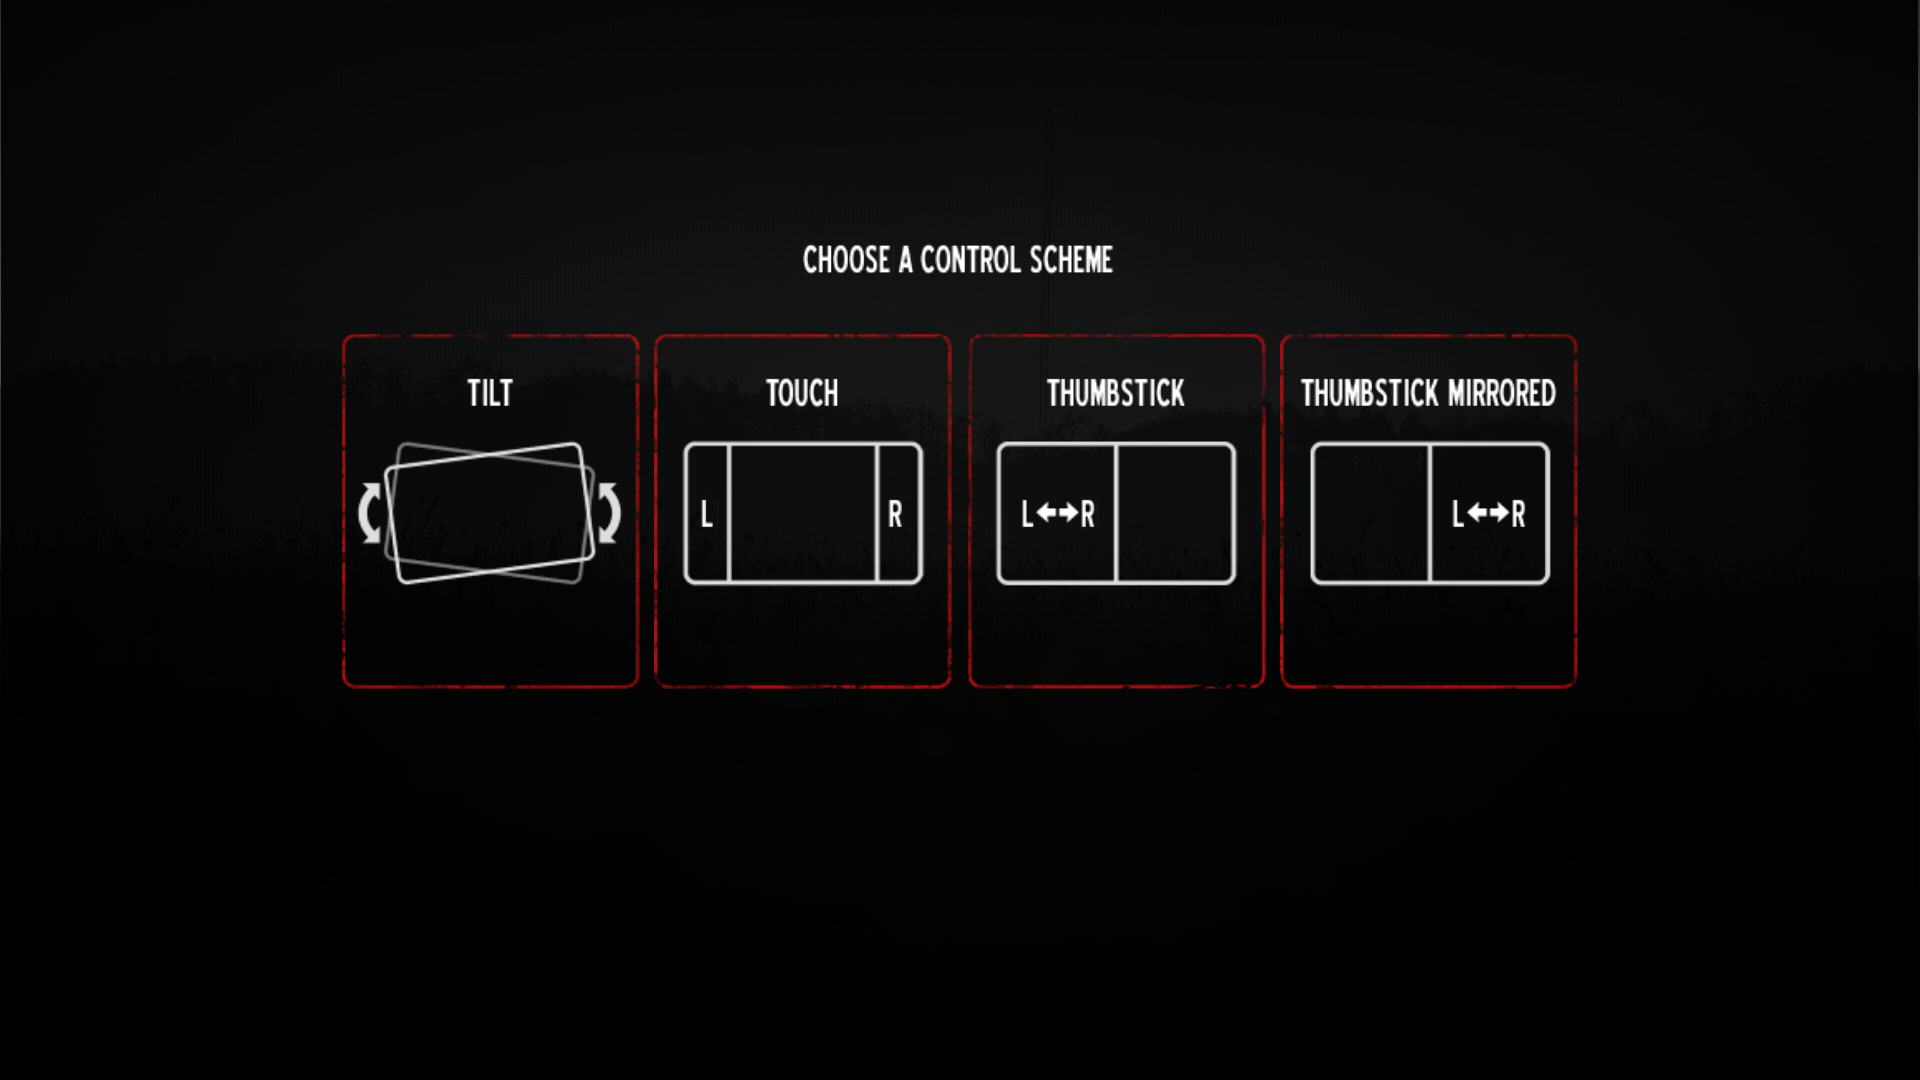 Into the Dead controler presets example for title, left/right buttons, and virtual thumbtack